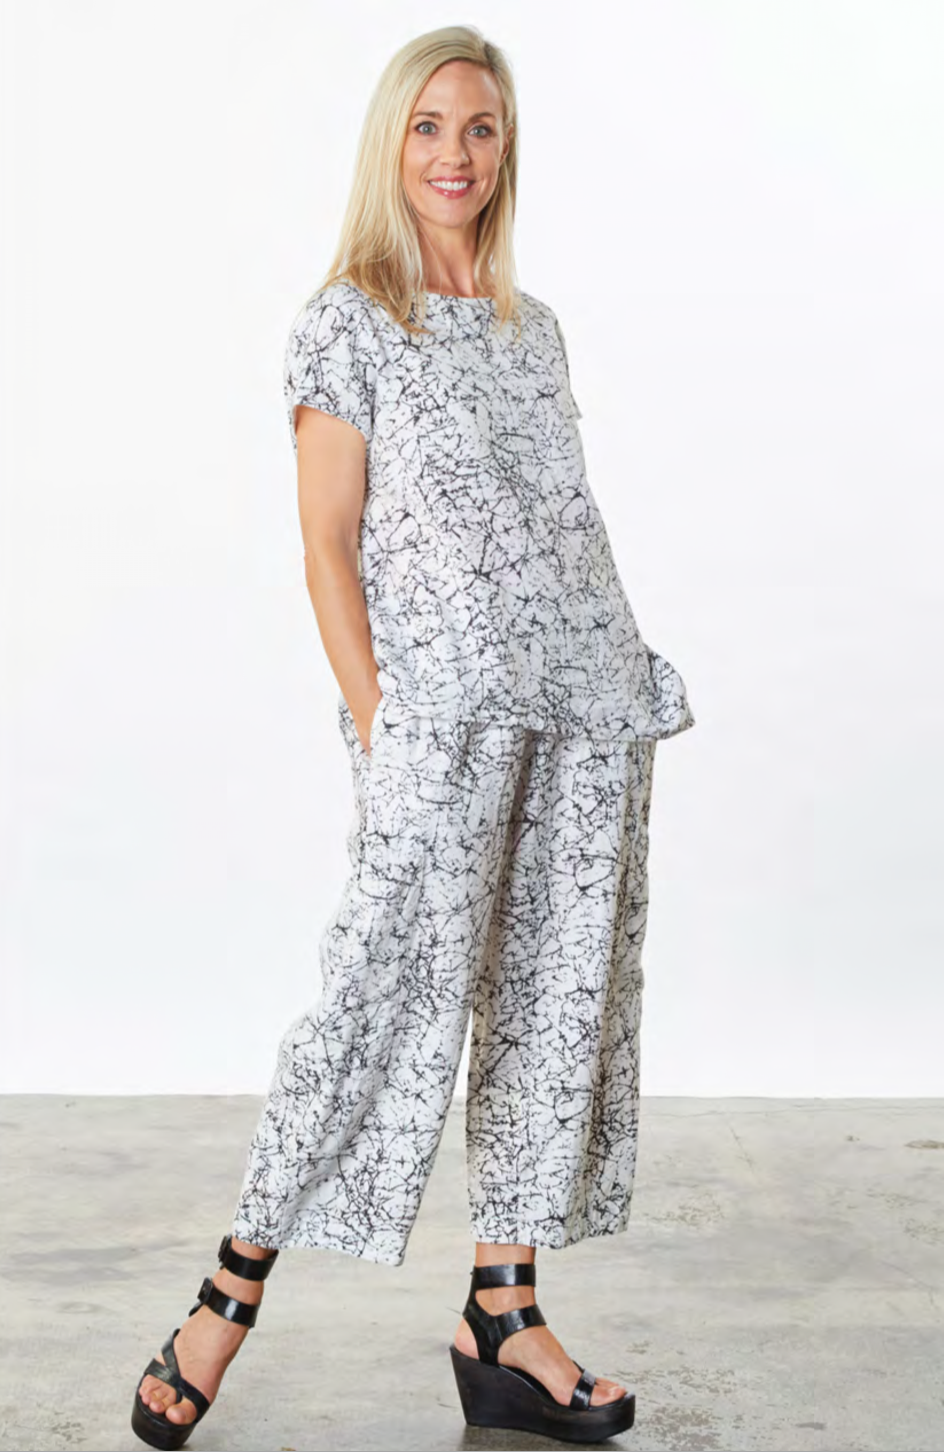 Bryn, Walker, usa, california, fashion, collection, brand, american, local, made, in, berkely, ladies, wear, ladieswear, ss2021, 2021, spring, summer, pant, suit, outfit, pattern, black, white